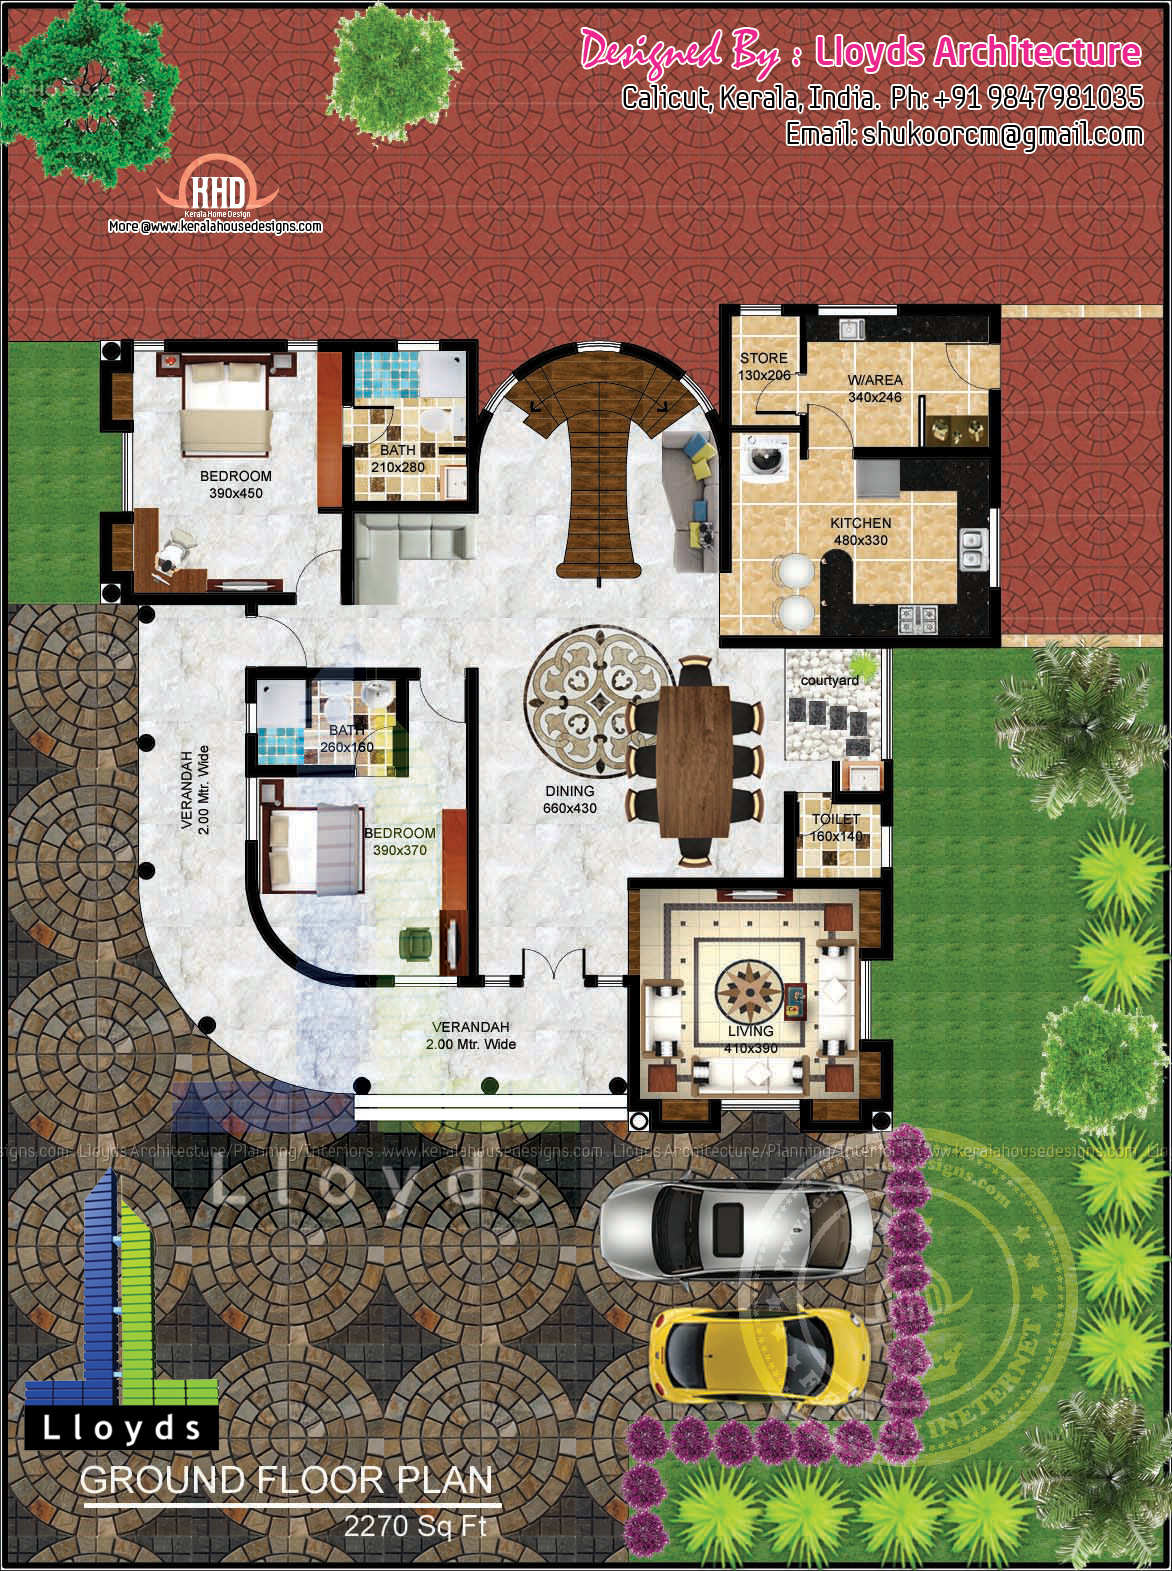 5 bedroom luxurious bungalow floor plan and 3d view for Kerala 3d home floor plans